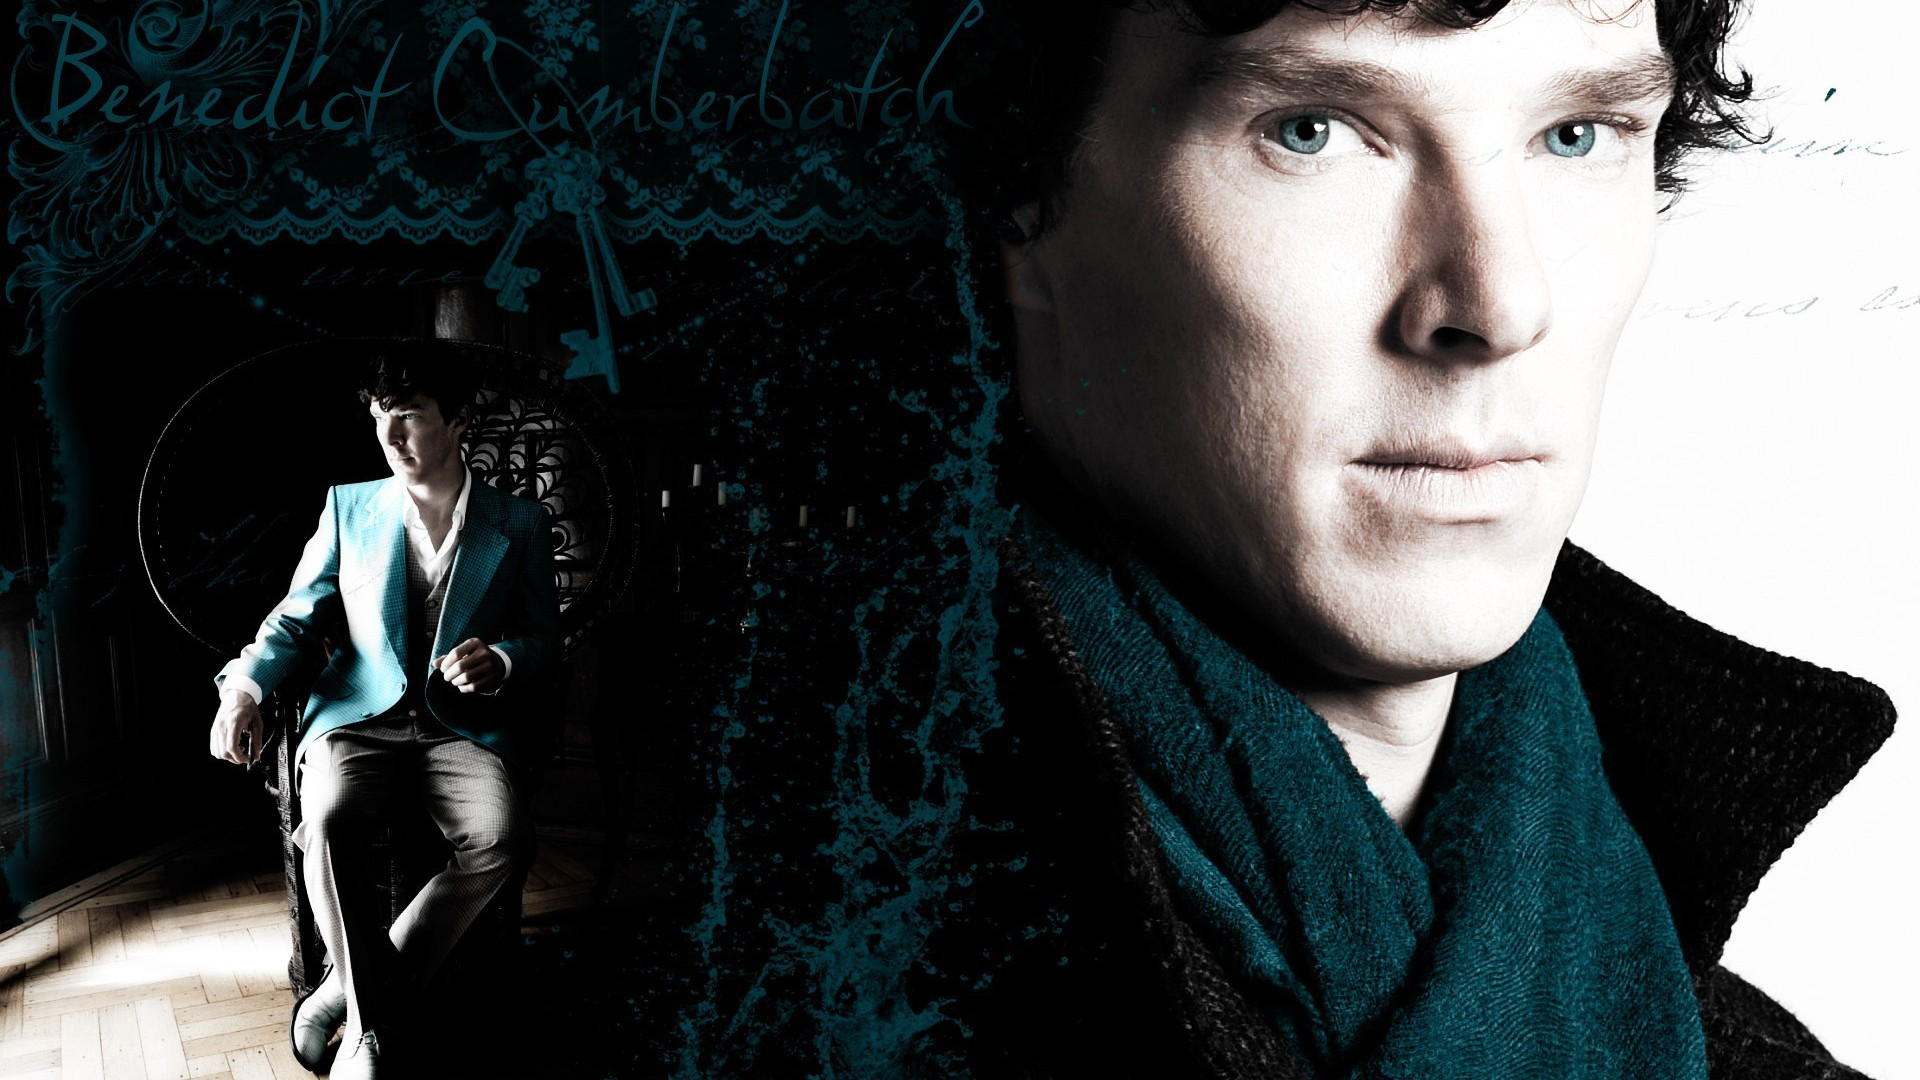 Benedict Cumberbatch Wallpaper Hd: Bbc Benedict Cumberbatch Sherlock Holmes Wallpaper